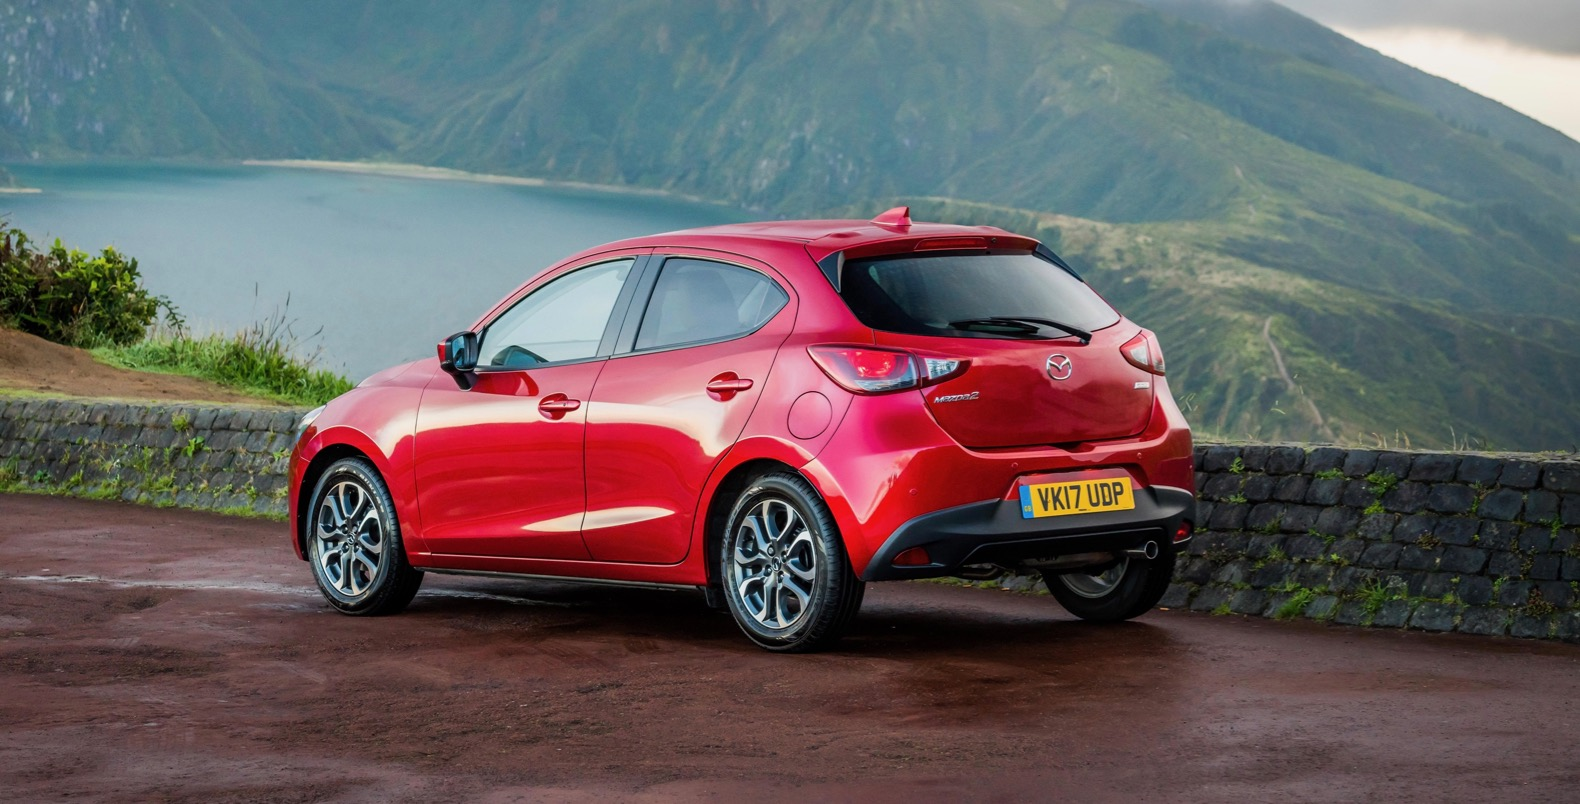 2020 Toyota Yaris Hatchback Might Be A Rebadged Mazda2 The Torque